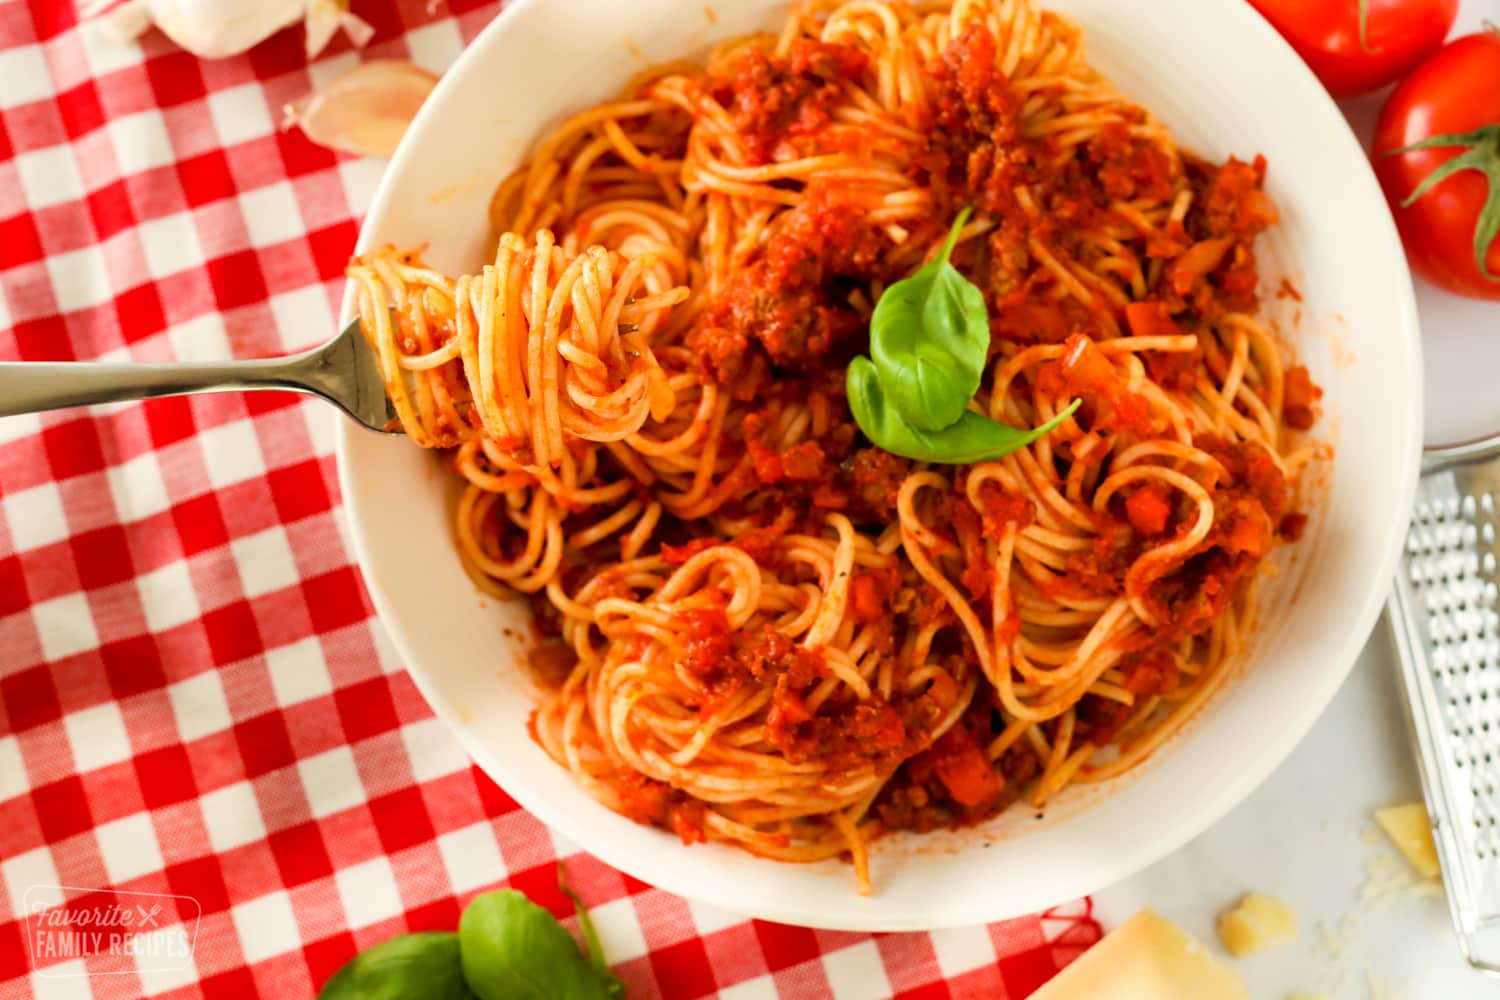 Pasta bowl of spaghetti with a fork